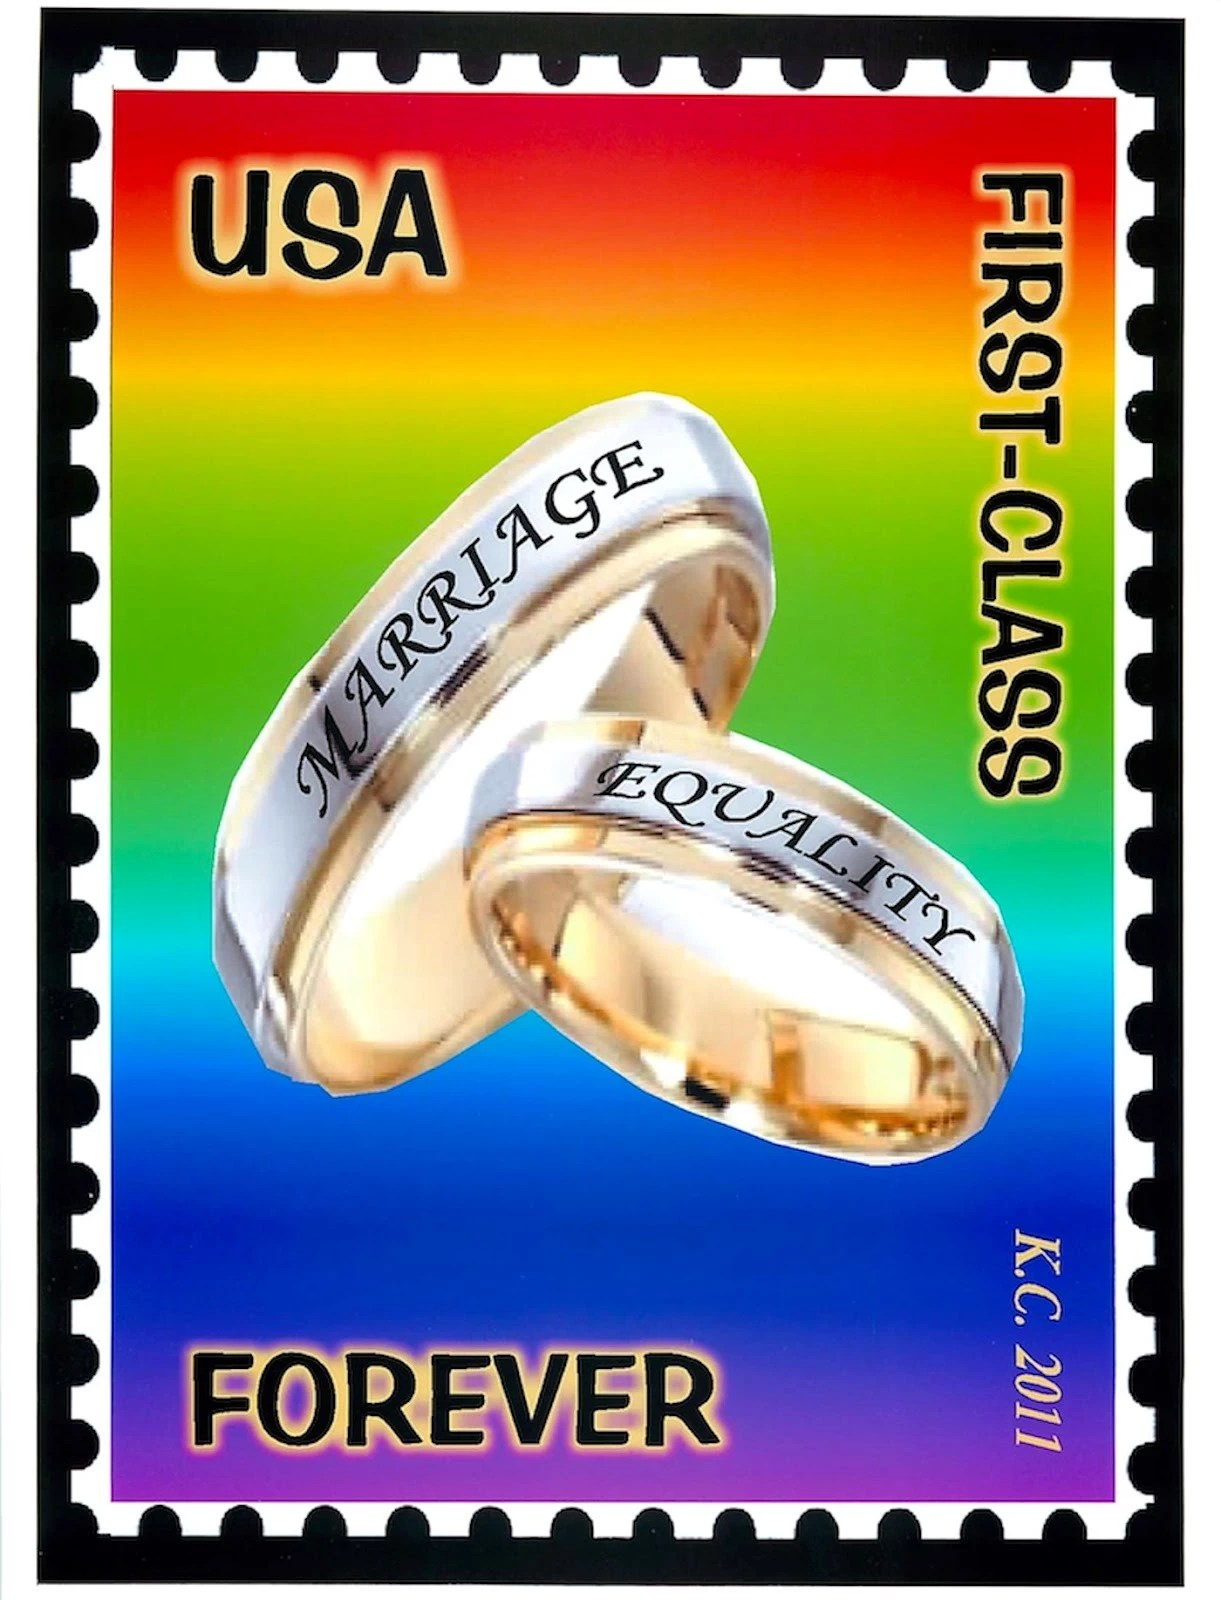 Polyamorous Wedding Rings : polyamorous, wedding, rings, Polyamory,, Mental, Health,, Marriage, Equality